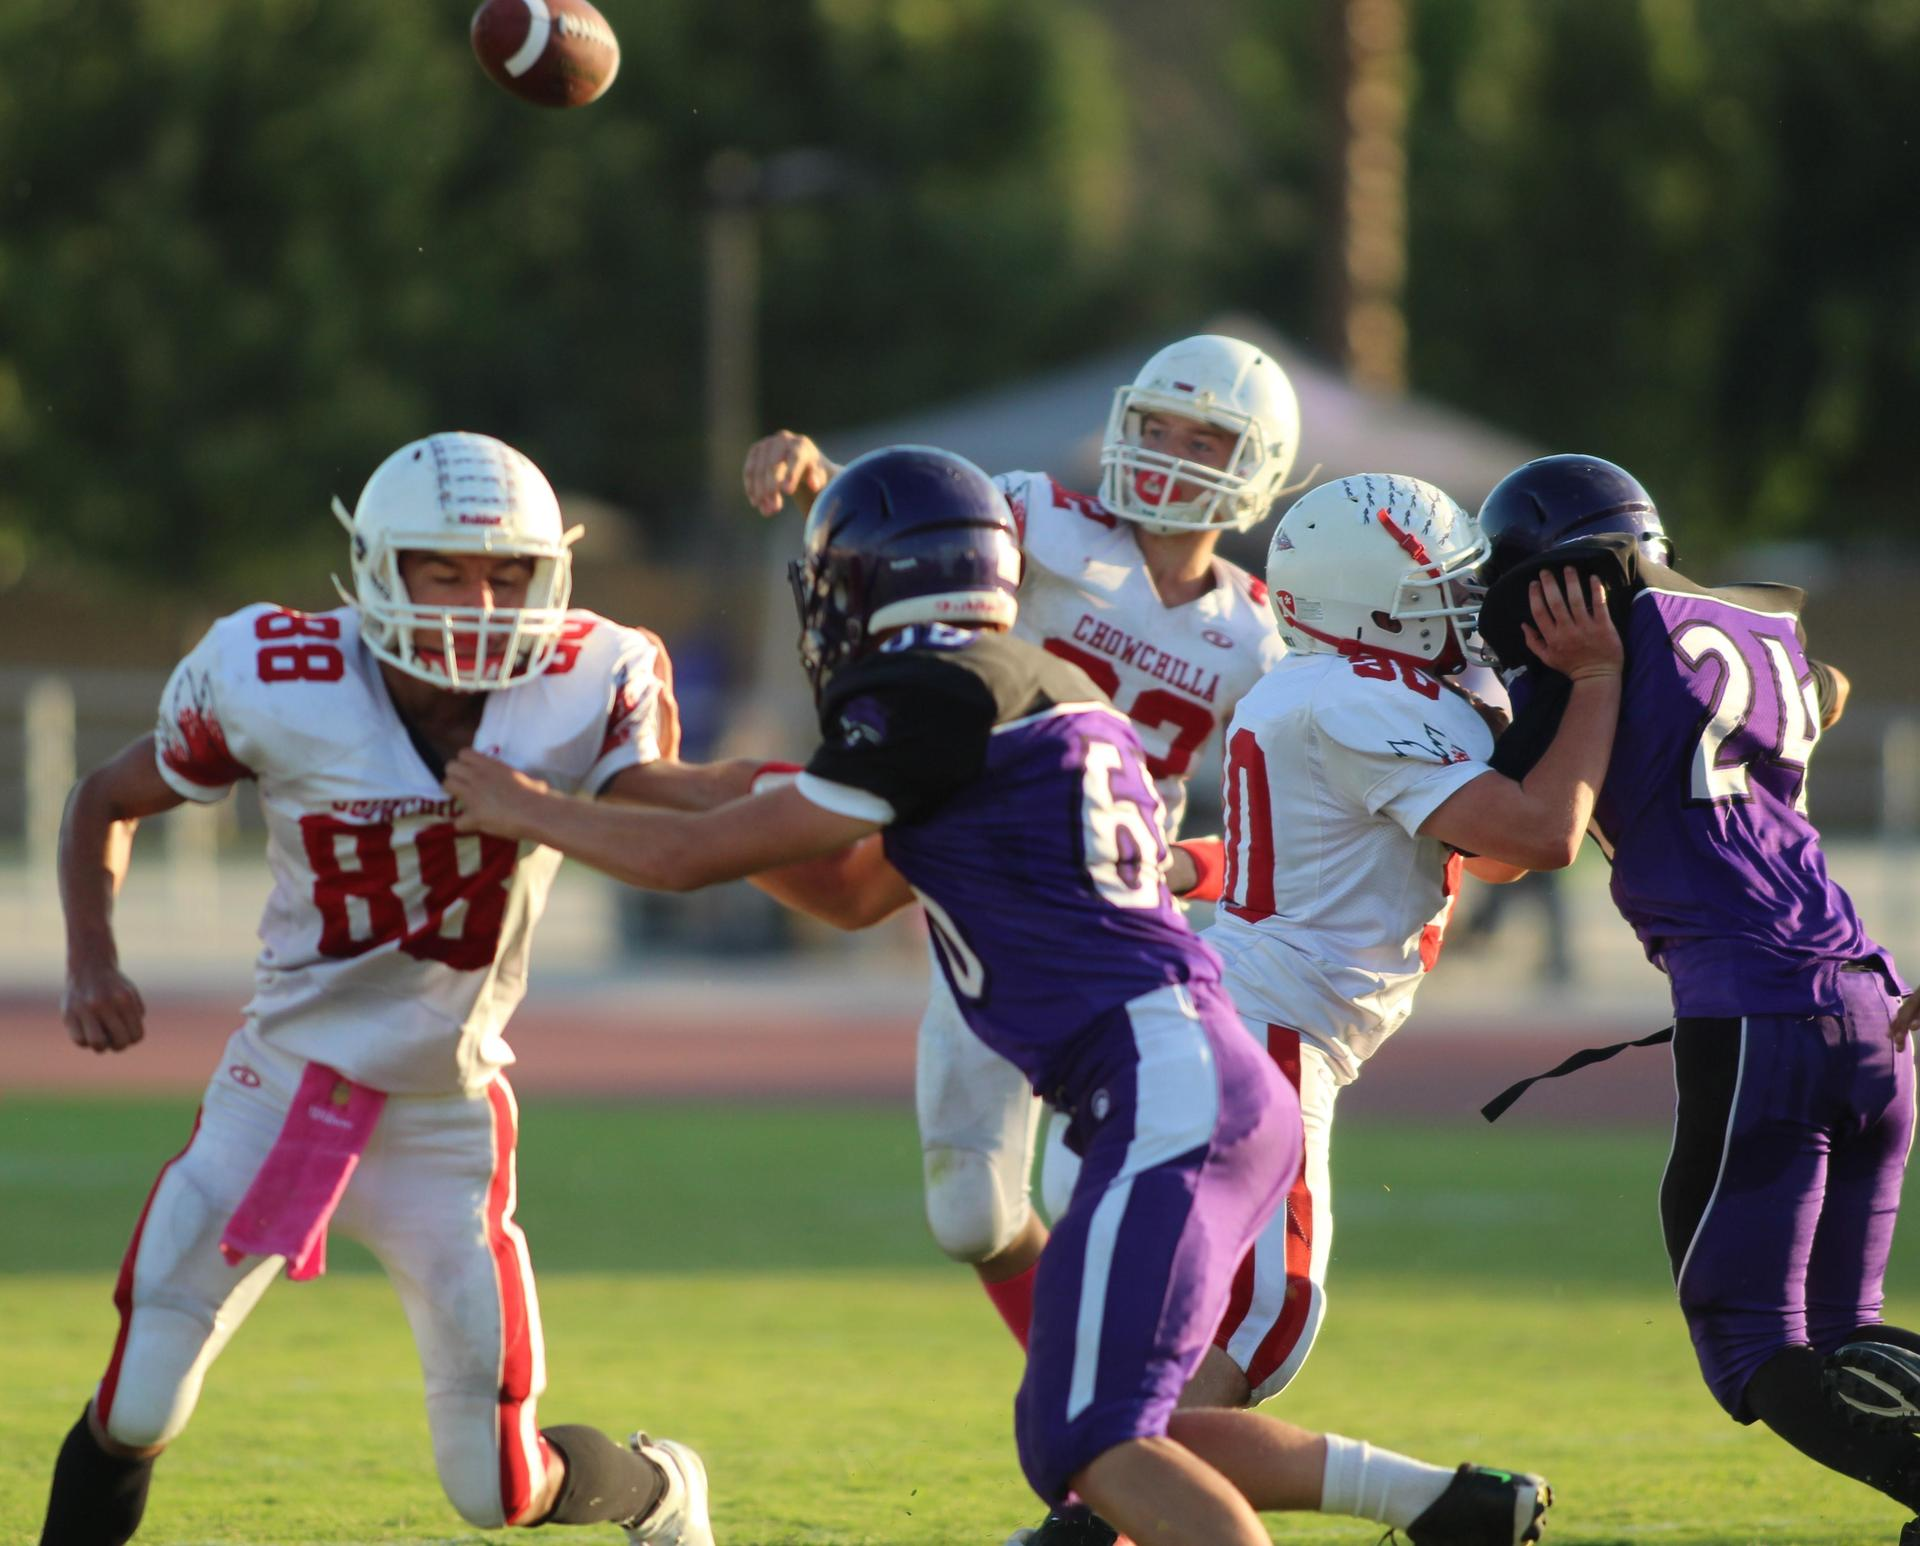 JV Football players in action against Washington Union